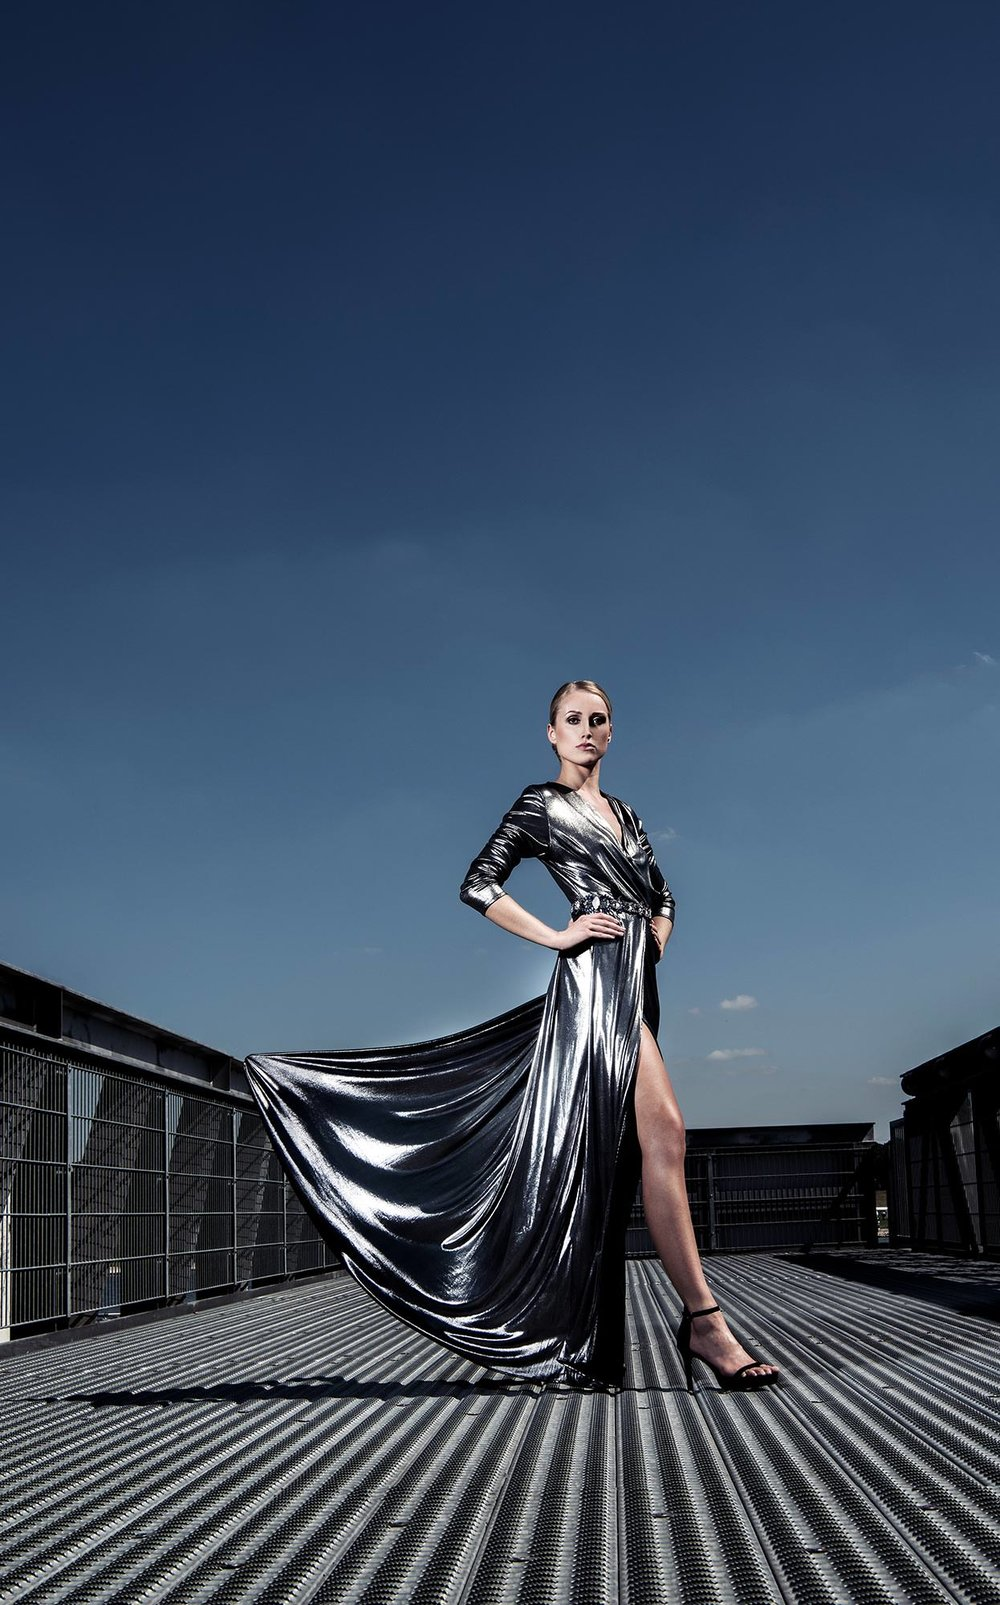 silver Dress with blue sky